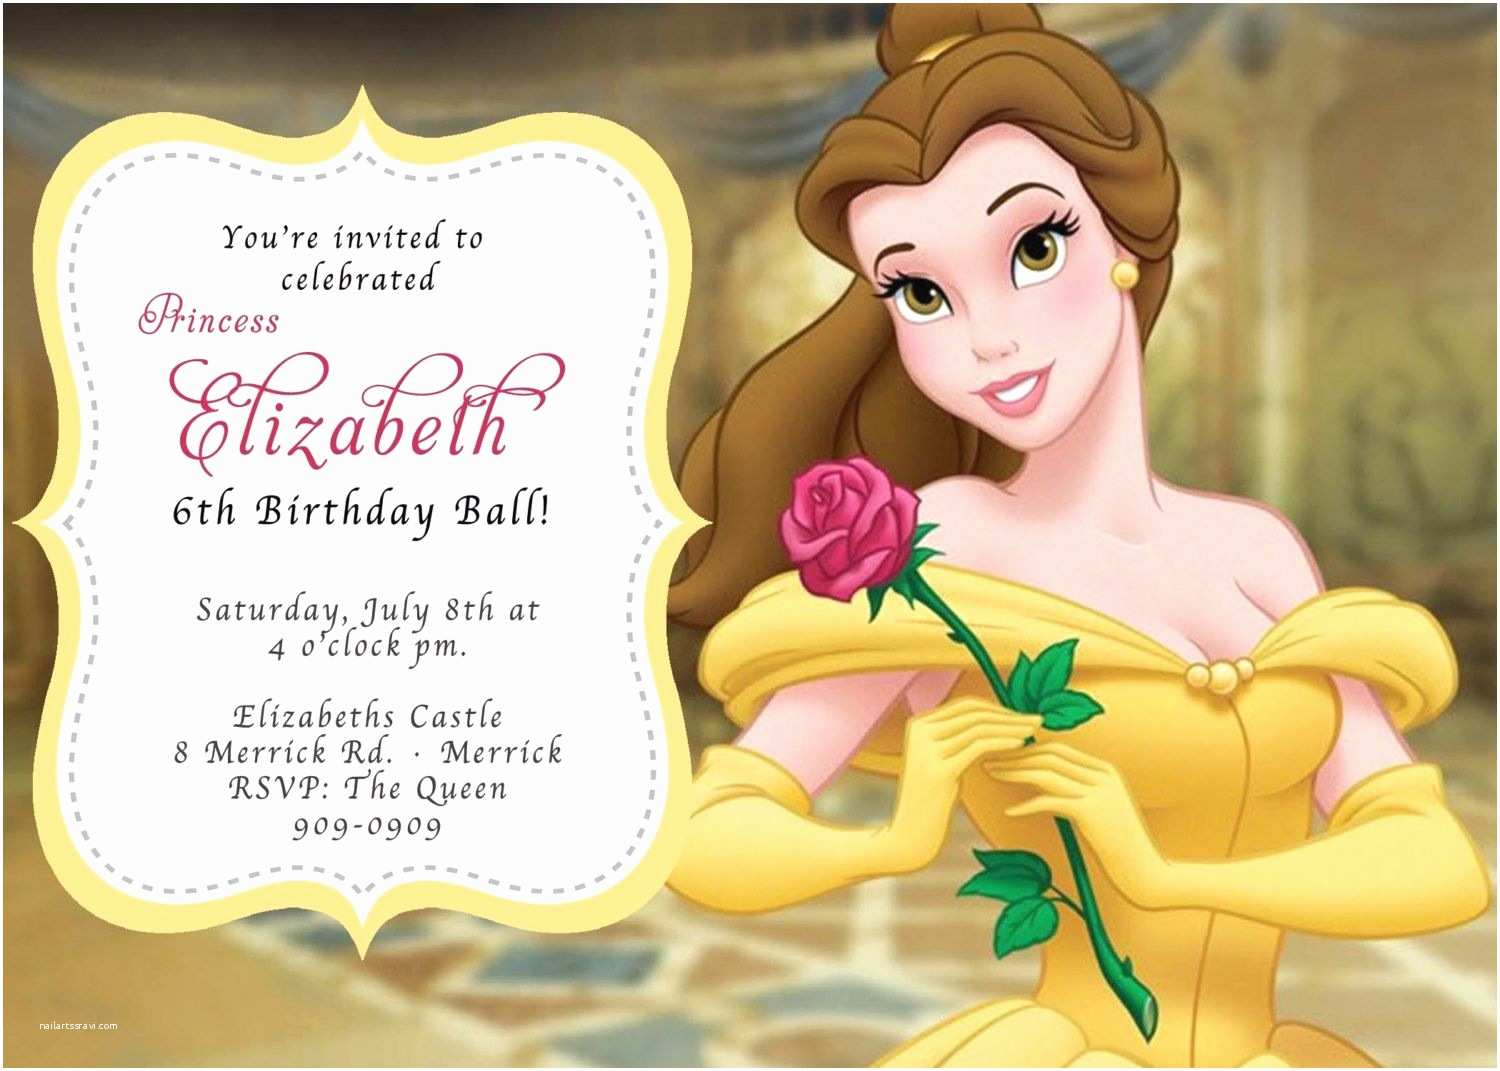 Beauty and the Beast Party Invitations Beauty and the Beast Birthday Invitations